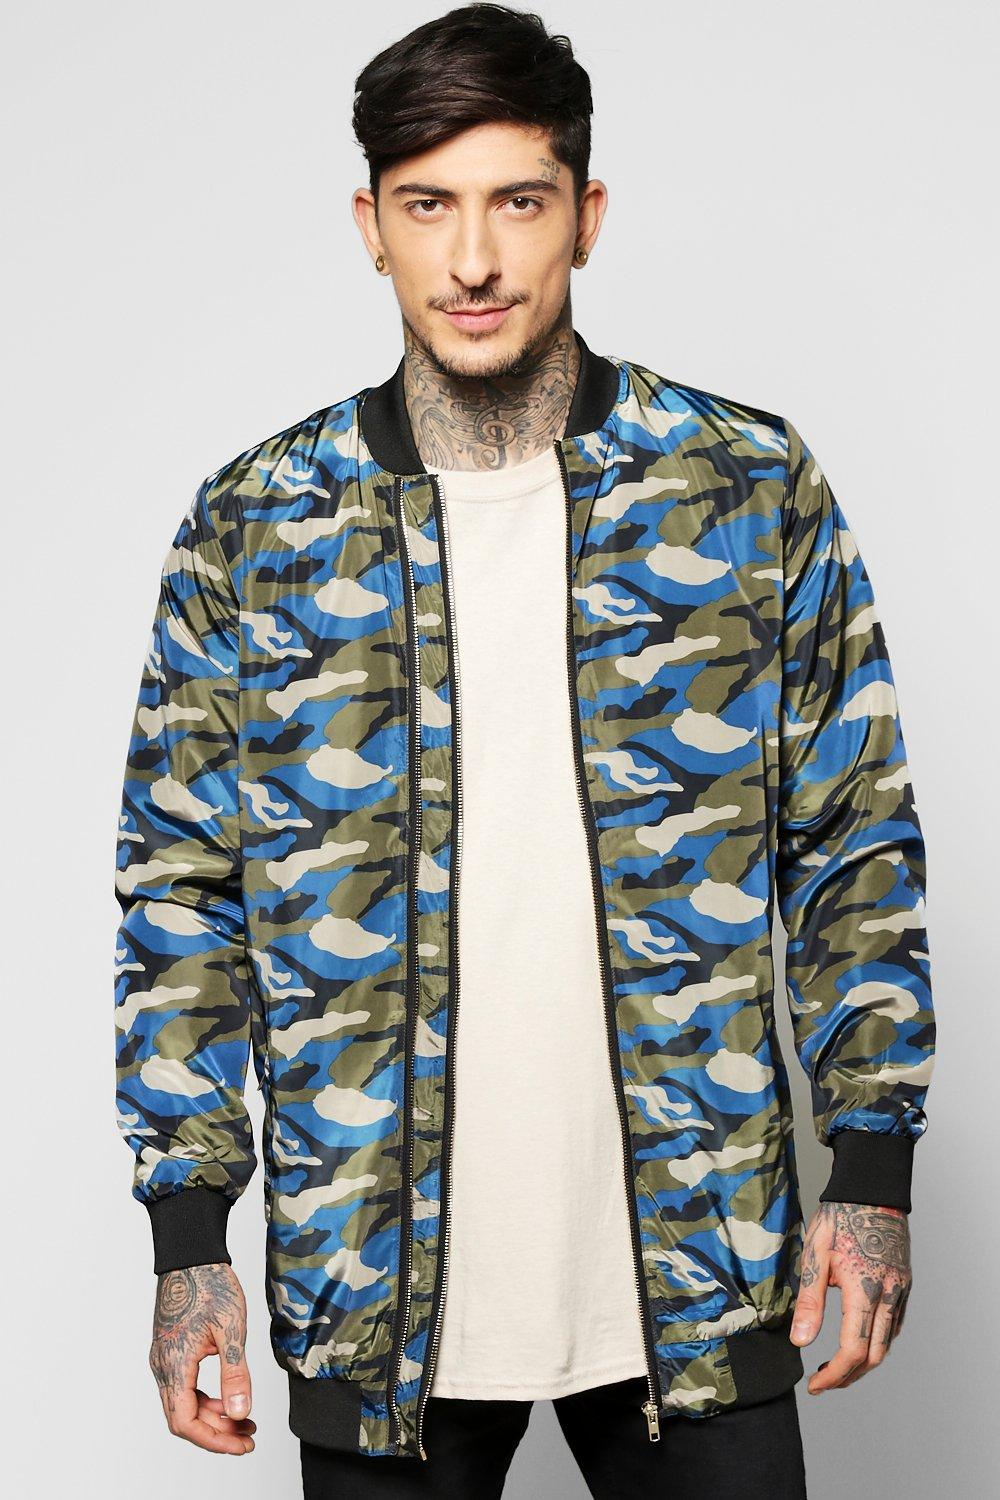 Image of All Over Camo Multi Zip Jacket - cobalt